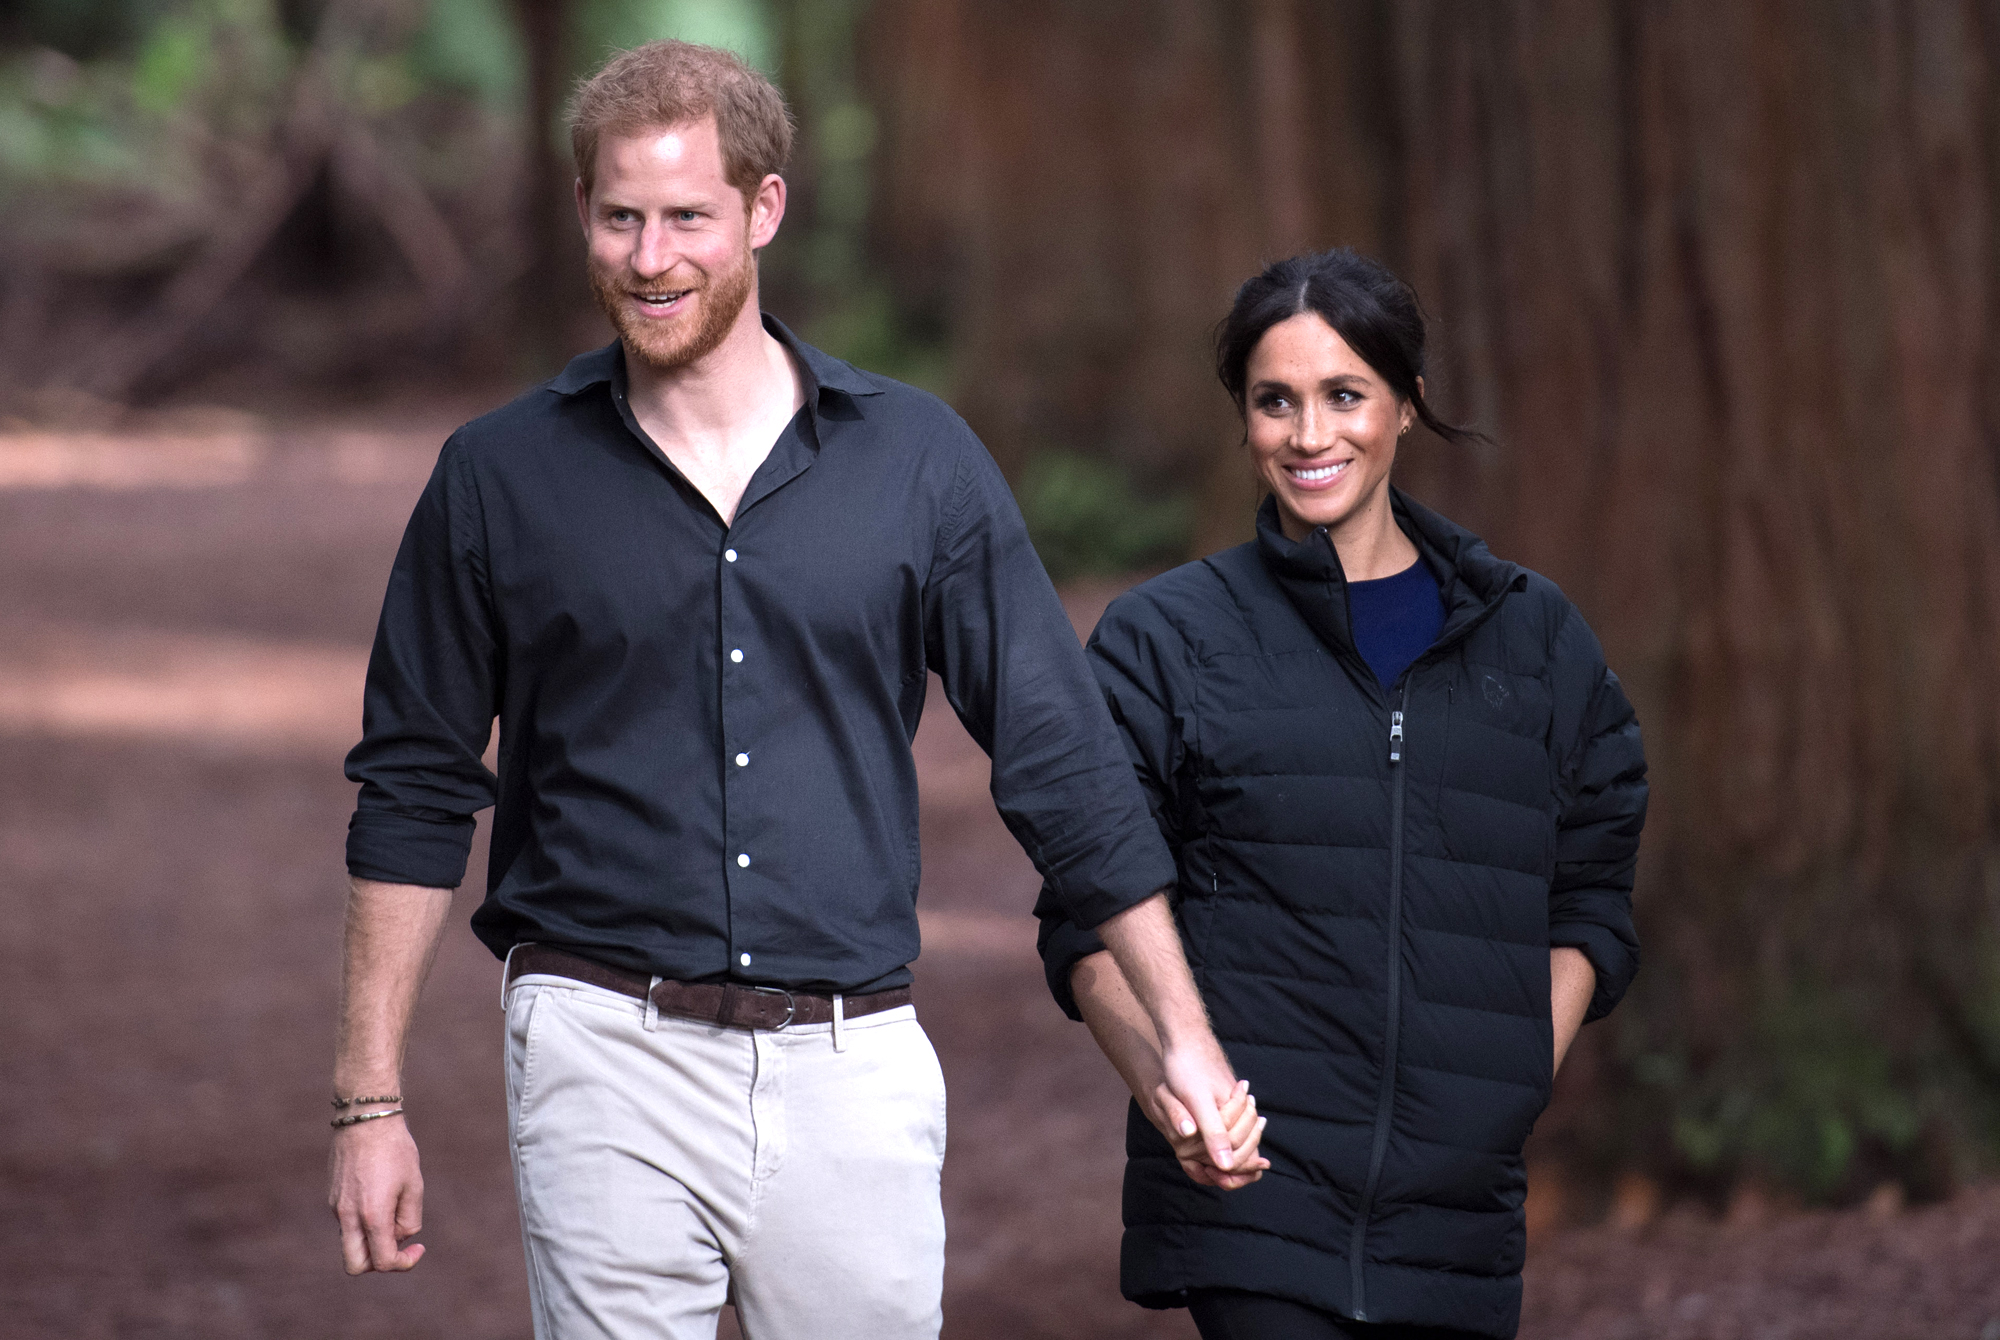 meghan markle and prince harry s baby everything we know people com https people com royals meghan markle prince harry royal baby everything to know